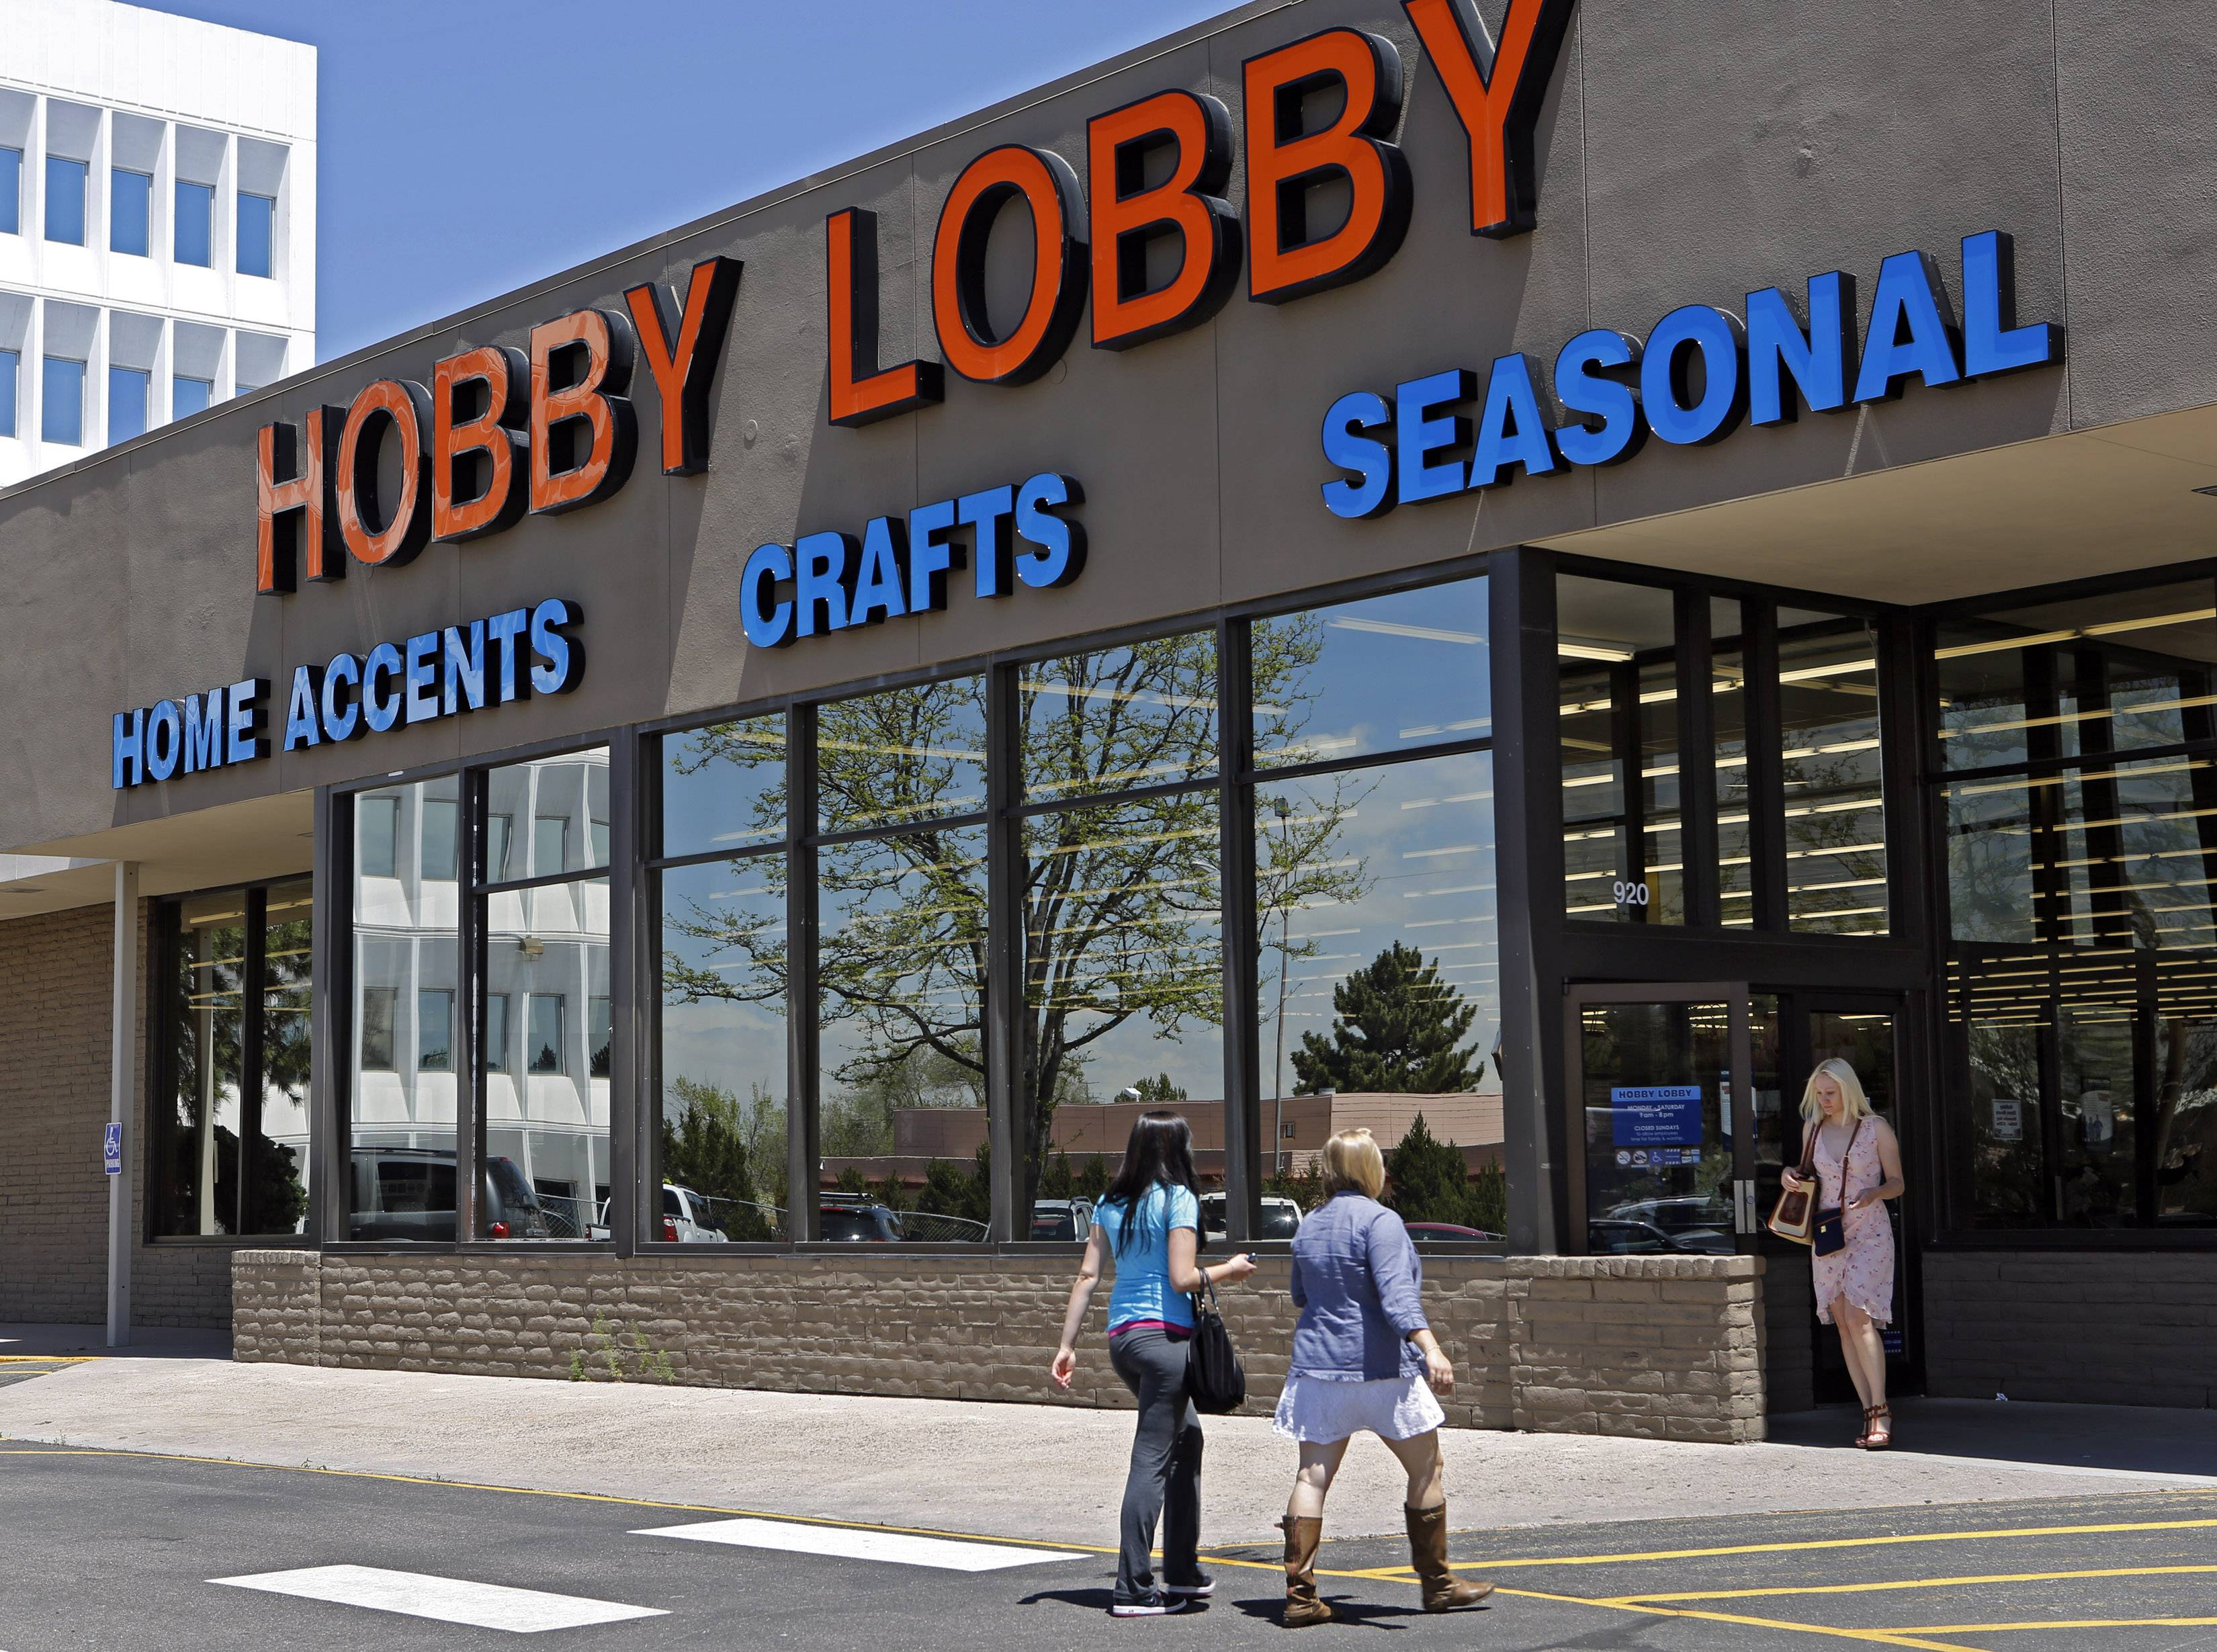 The Supreme Court hearing arguments Tuesday in a religion-based challenge from family-owned companies that object to covering certain contraceptives in their health plans as part of the law's preventive care requirement. The largest company among them is Hobby Lobby Stores Inc.